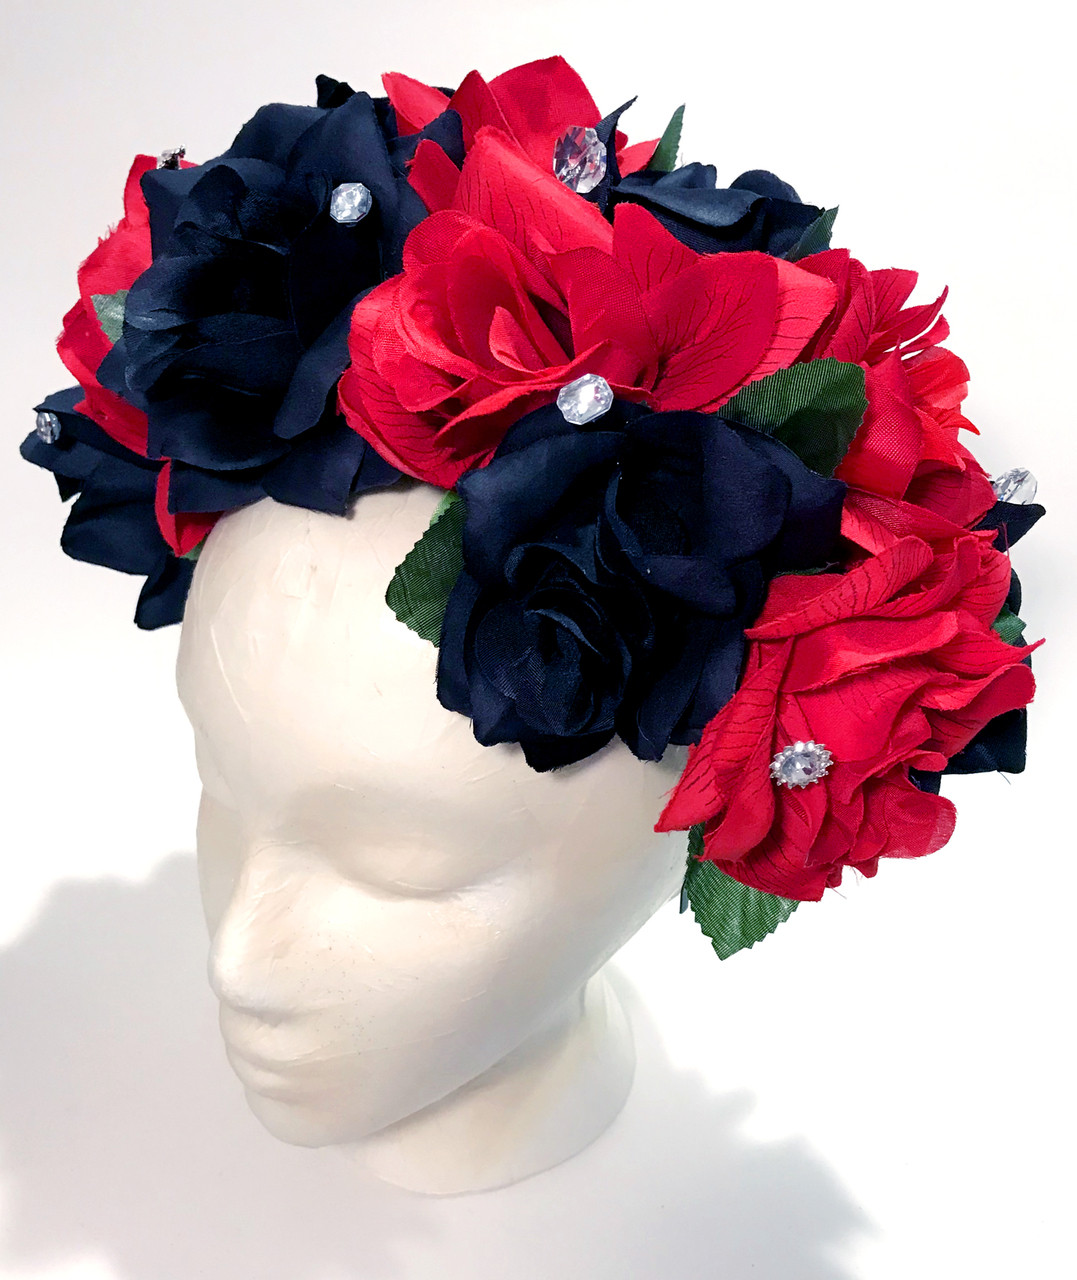 Mexican Women s Red Black Rose Flower Crown - My Mercado Mexican Imports a9300908a75